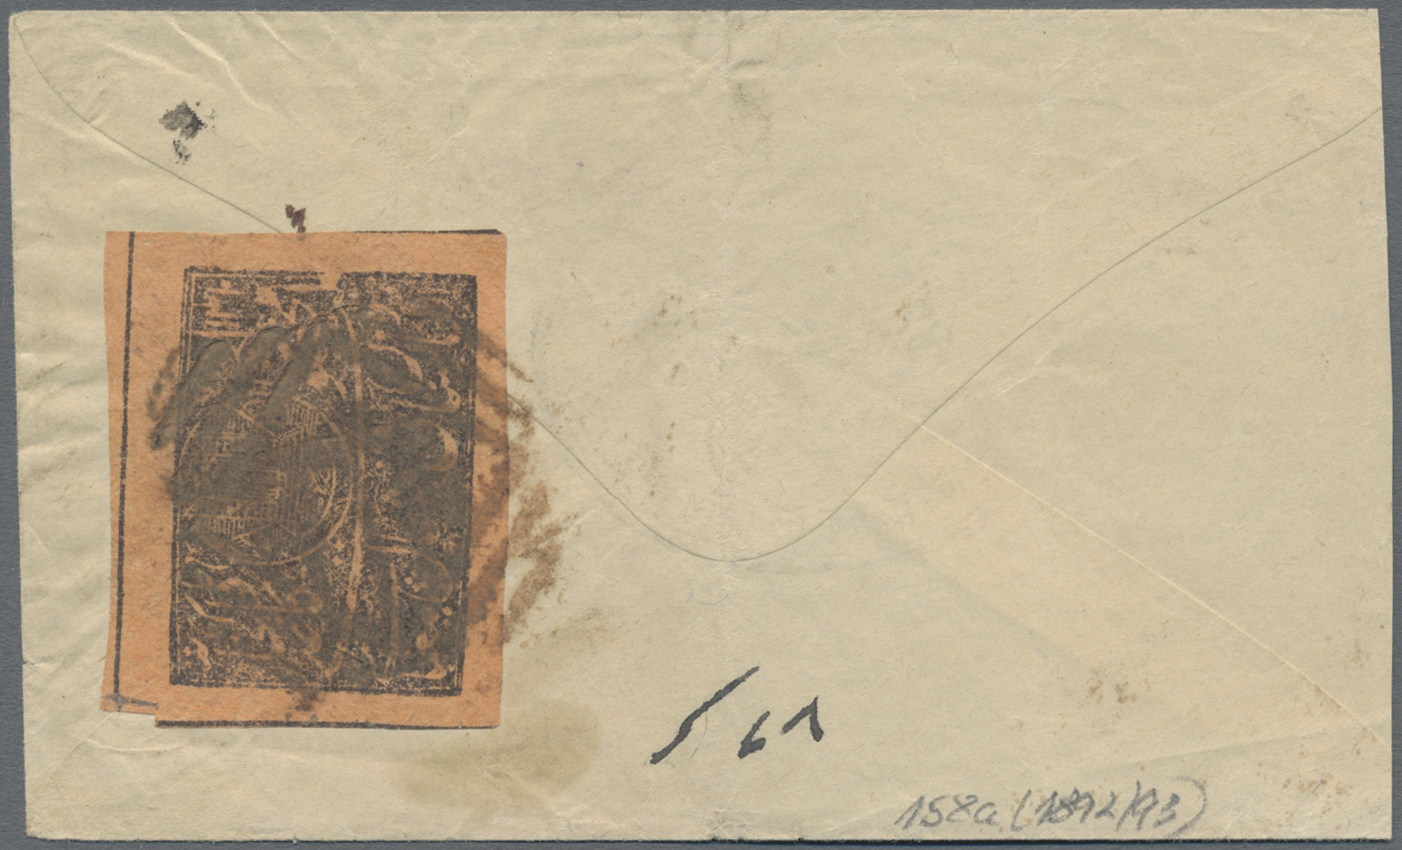 Lot 05013 - Afghanistan  -  Auktionshaus Christoph Gärtner GmbH & Co. KG Sale #49 Single lots Asia, Thematics, Oversea, Europe, Old German States, Third Reich, German Colonies and the Federal Republic of Germany